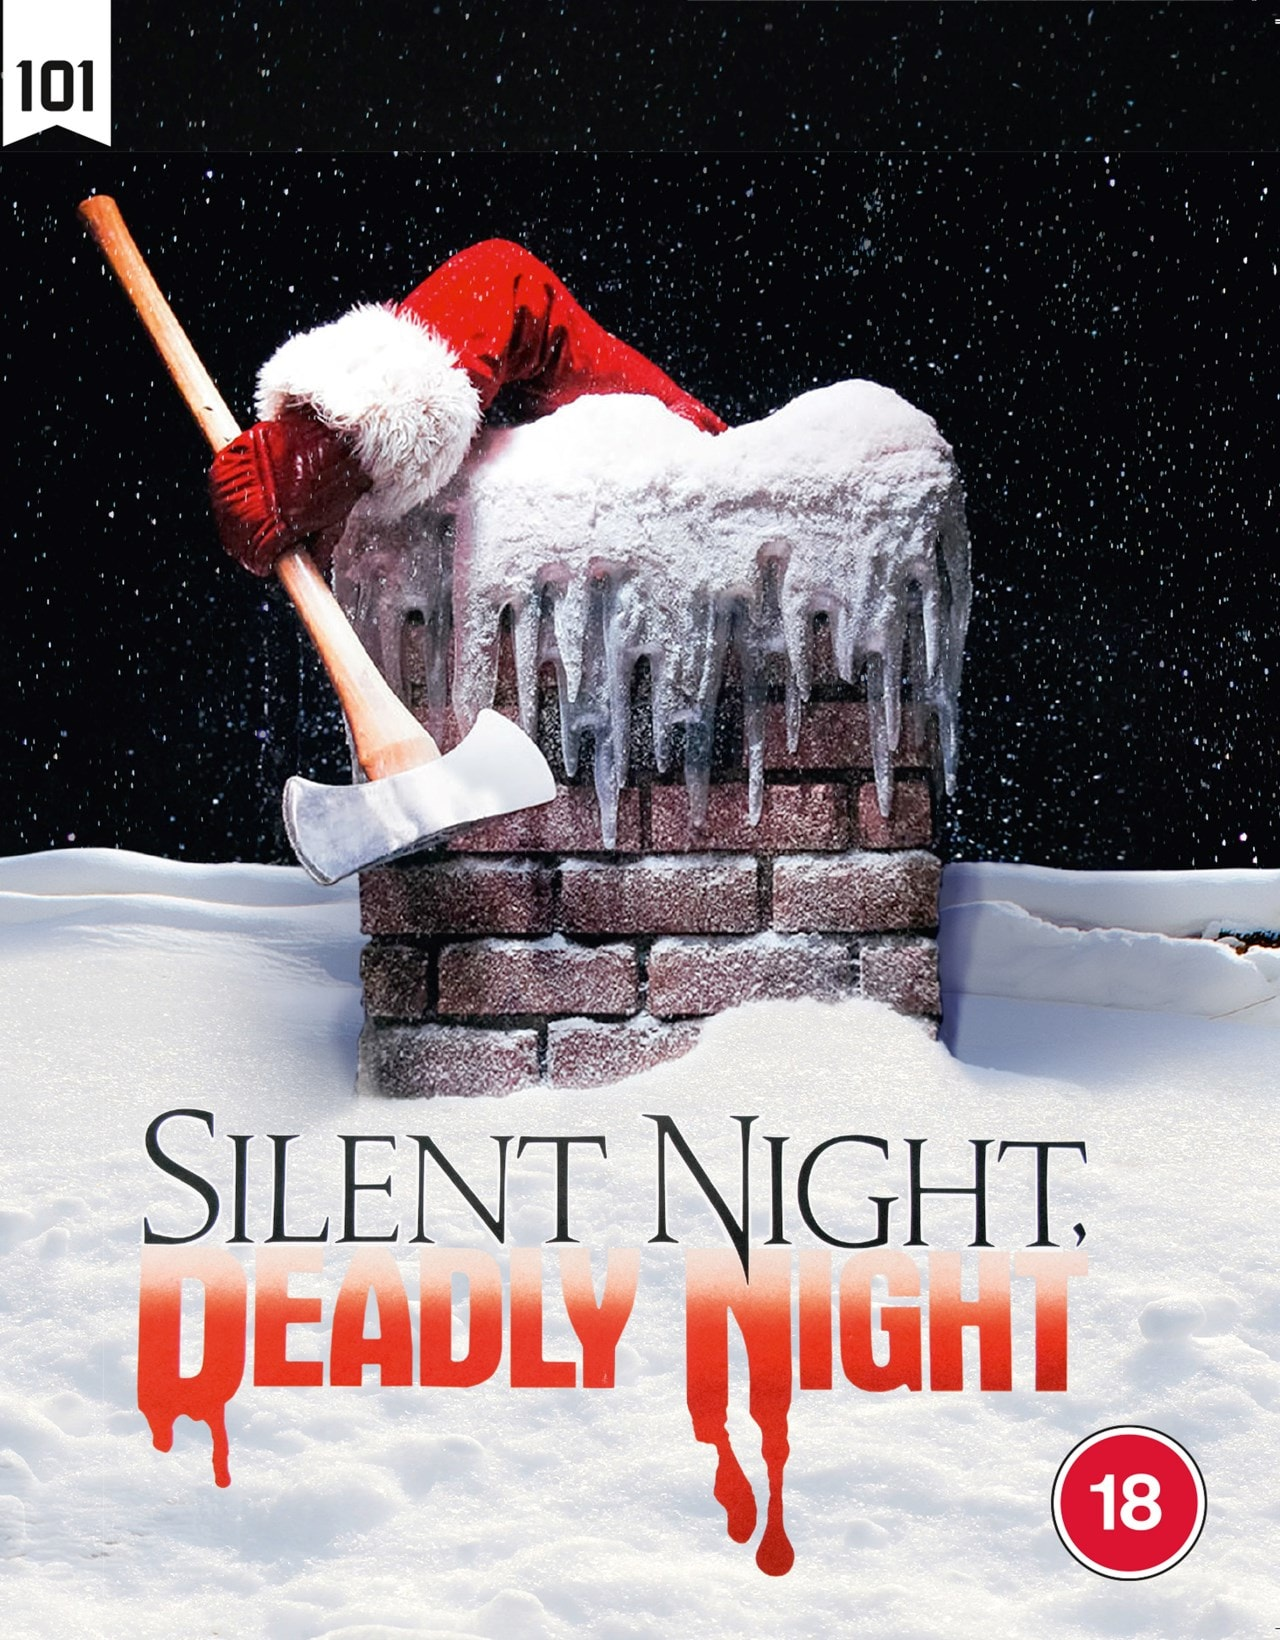 Silent Night, Deadly Night - 1